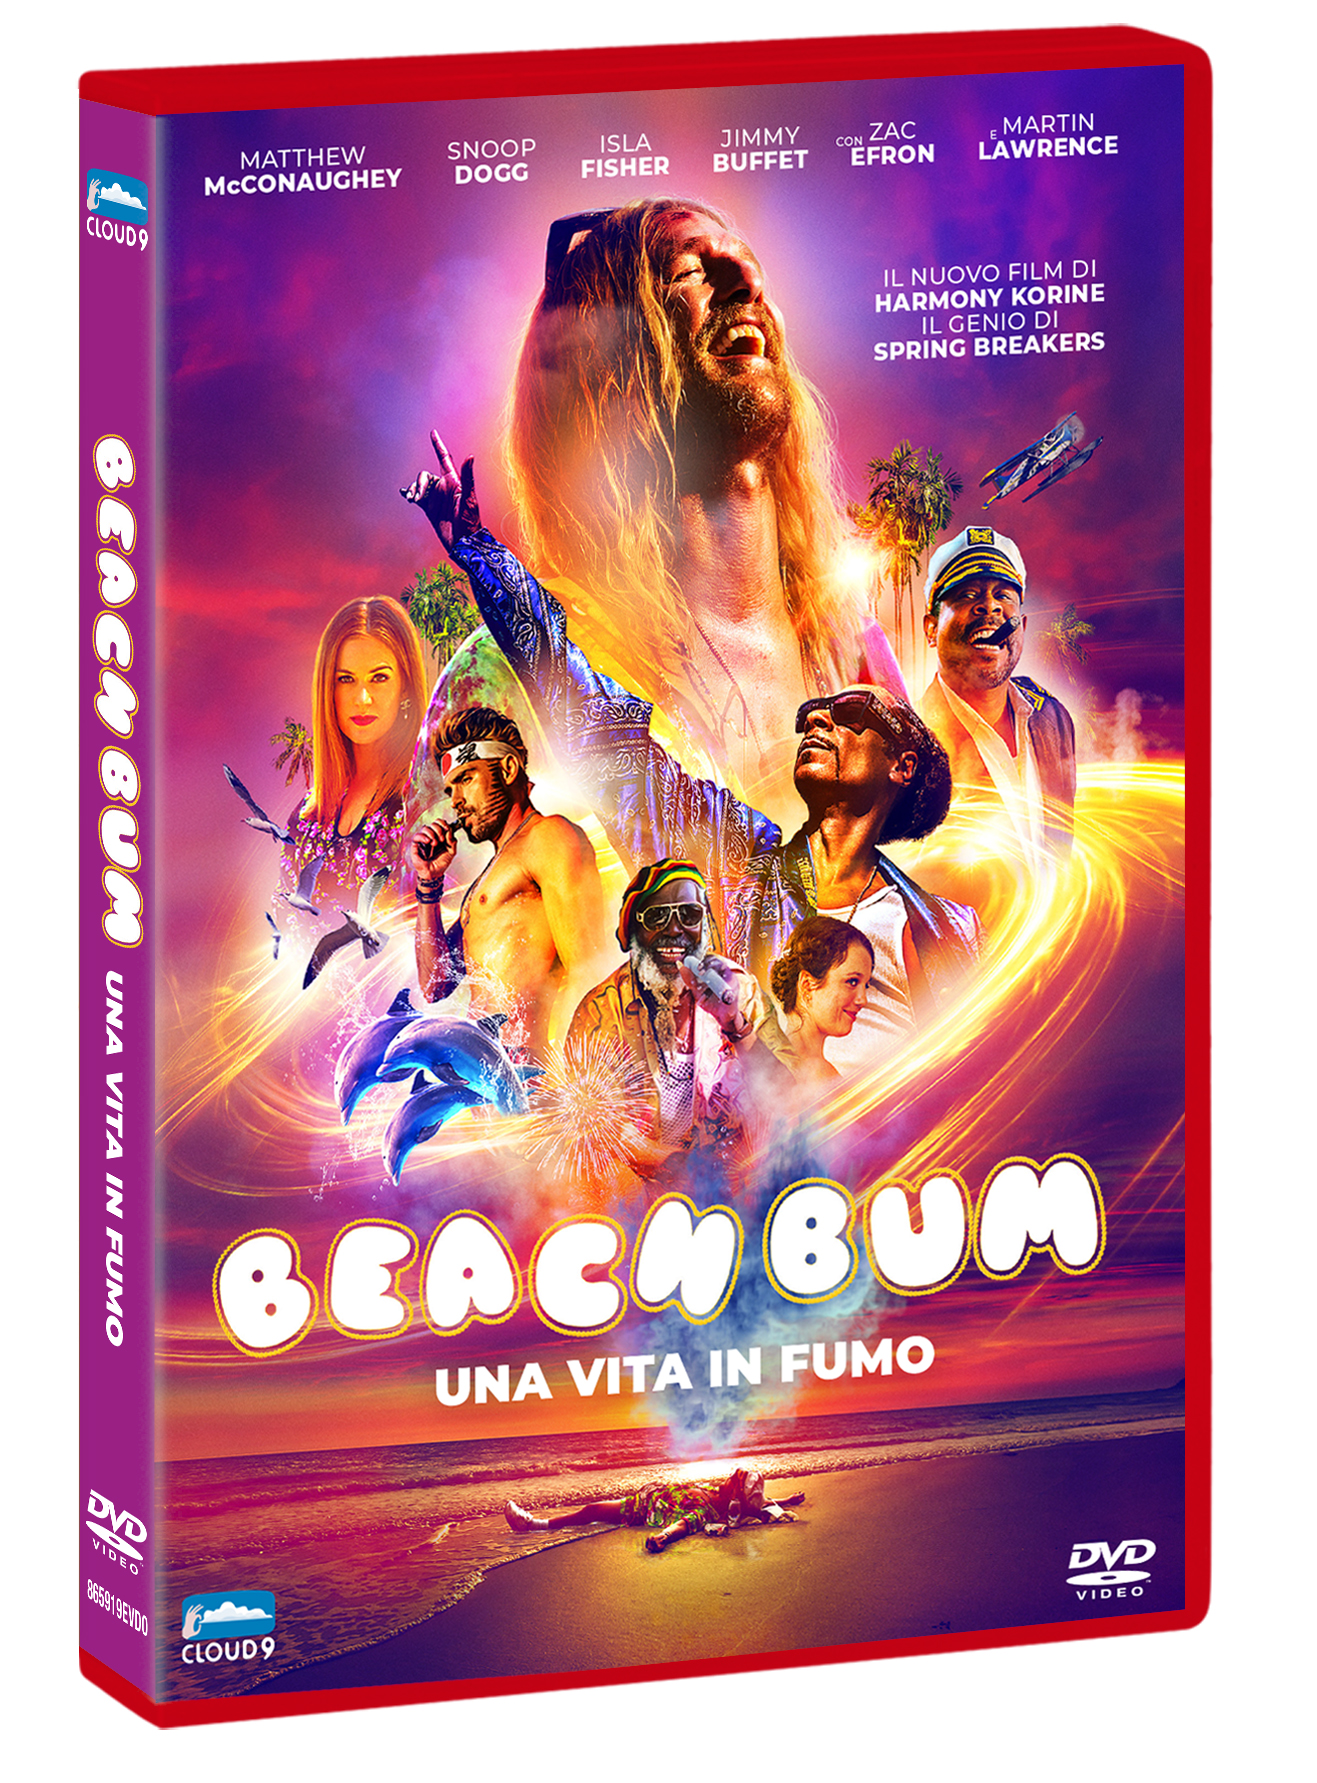 BEACH BUM - UNA VITA IN FUMO (DVD)